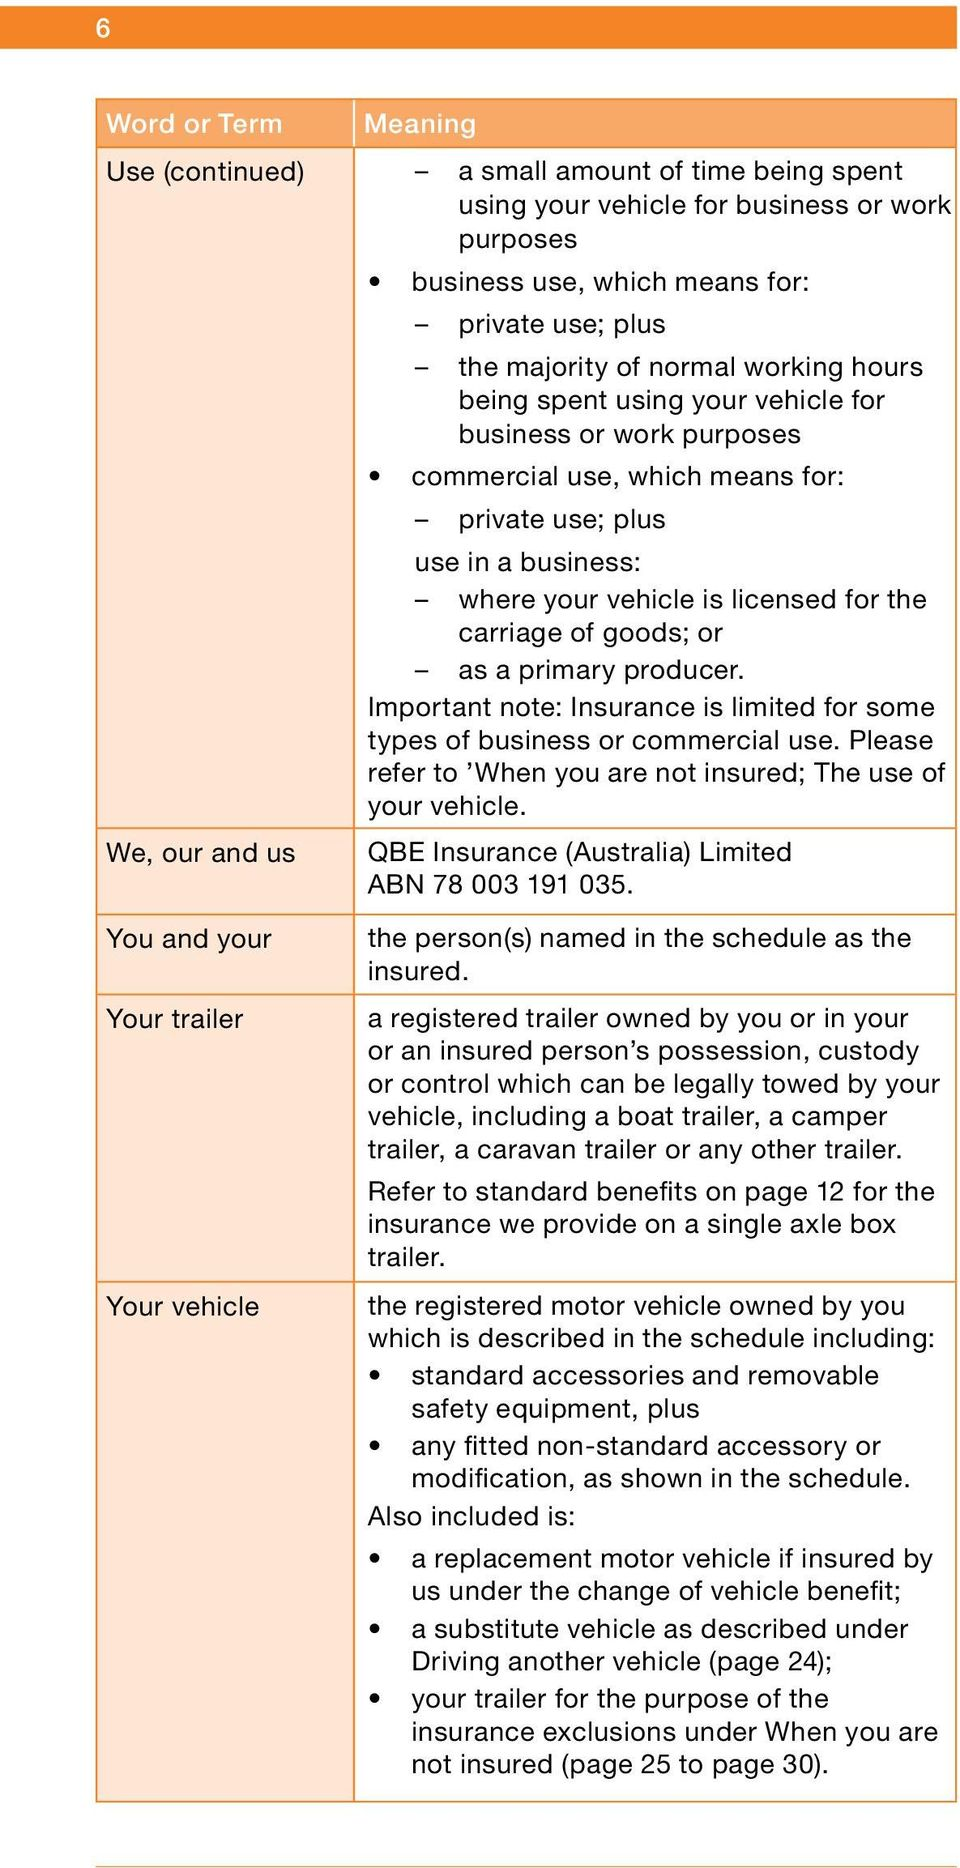 goods; or as a primary producer. Important note: Insurance is limited for some types of business or commercial use. Please refer to When you are not insured; The use of your vehicle.